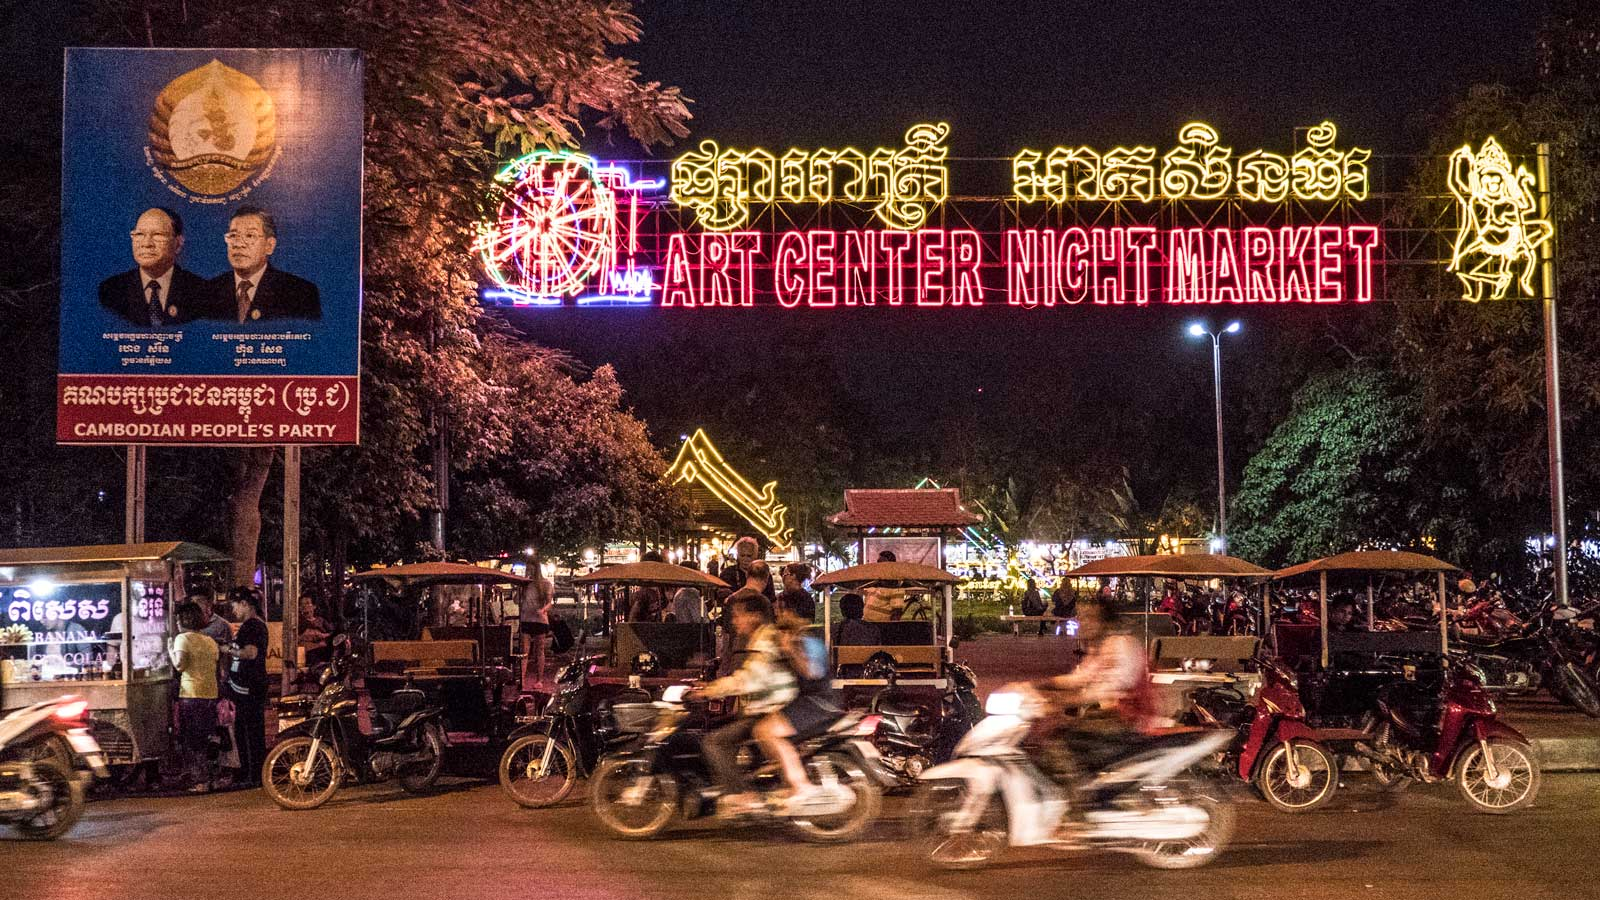 Art Center Night Market Siem Reap Cambodia